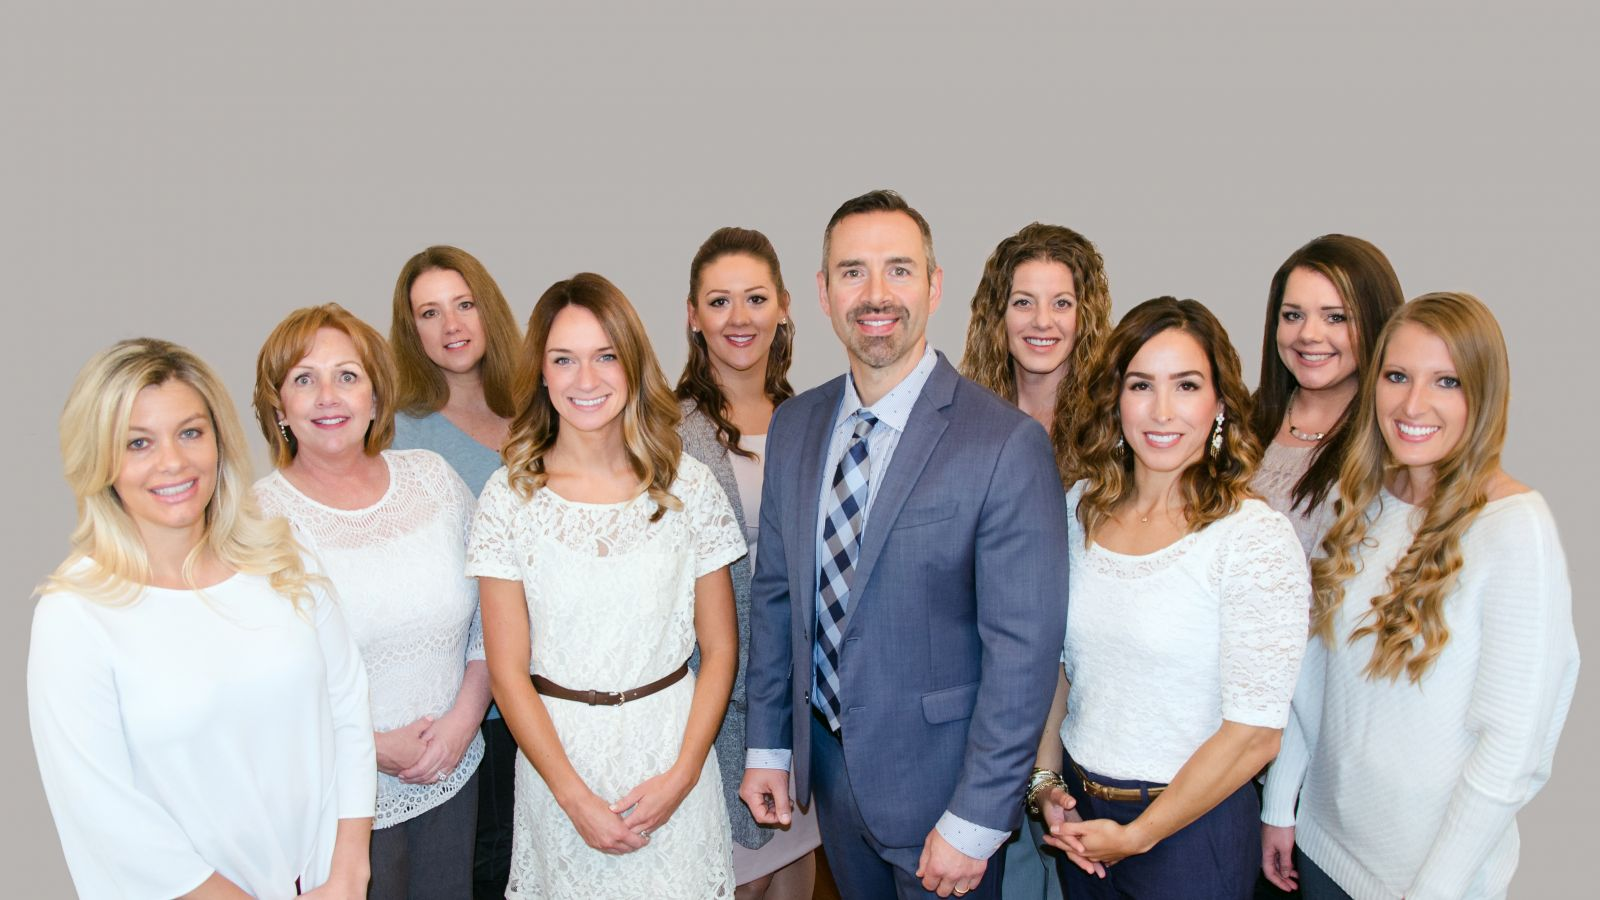 Dental Staff in Portage, MI